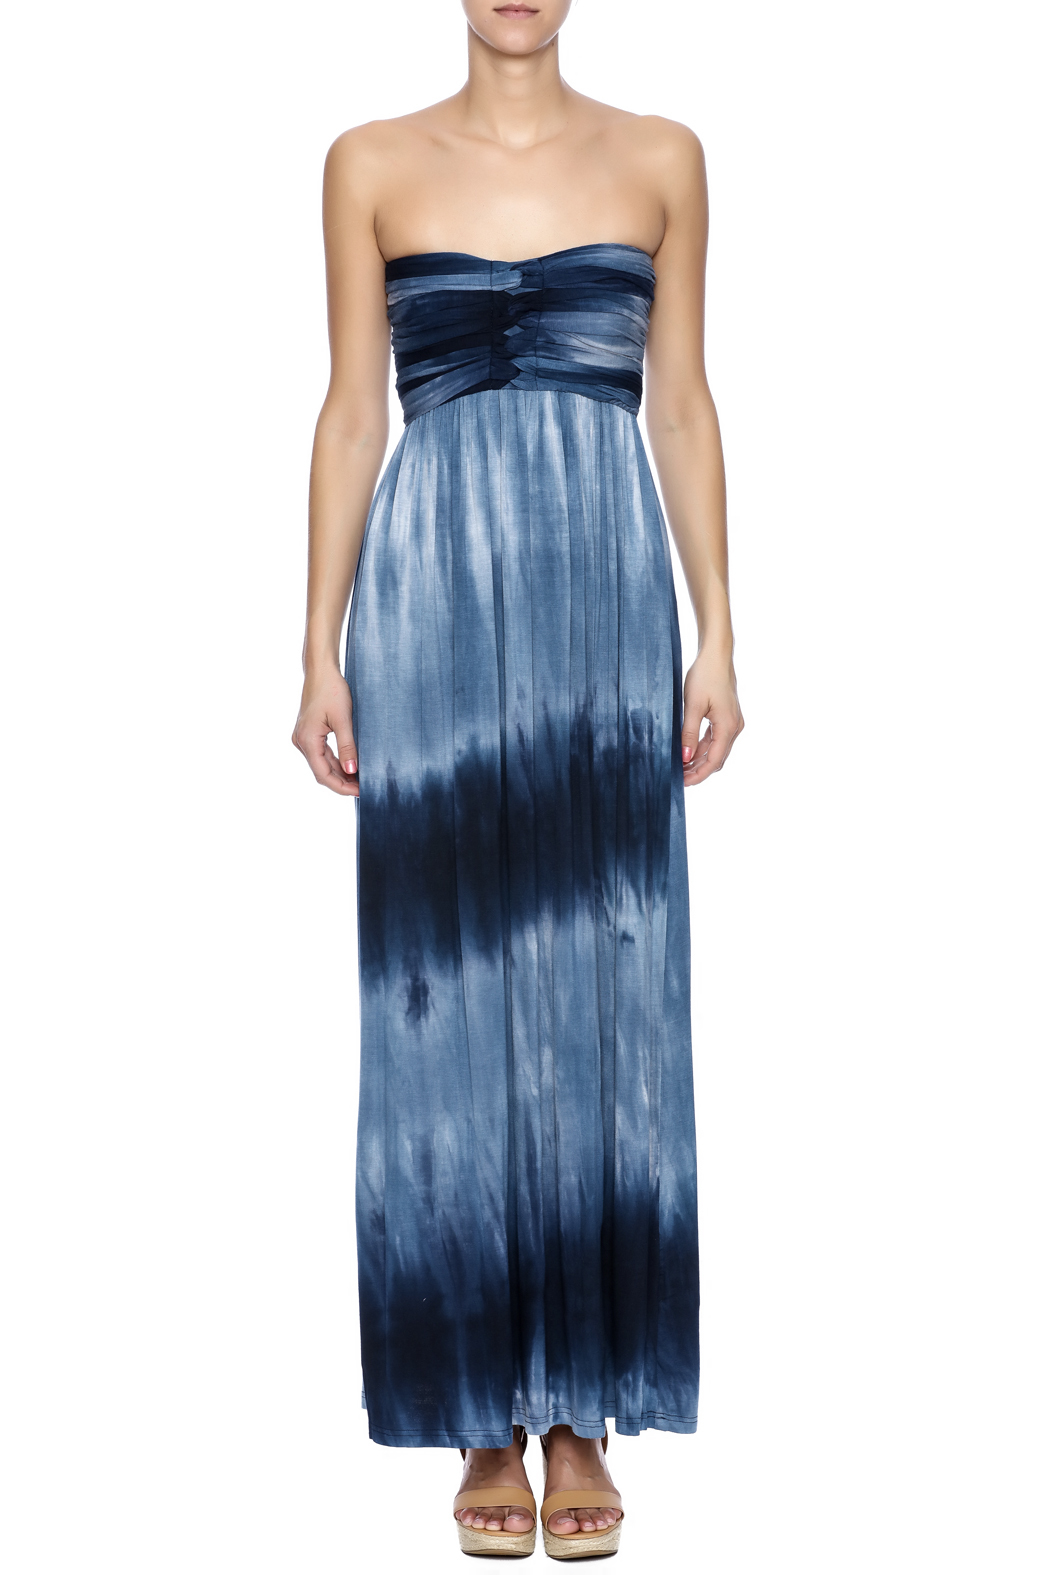 Catwalk Studio Tie Dye Maxi - Front Cropped Image